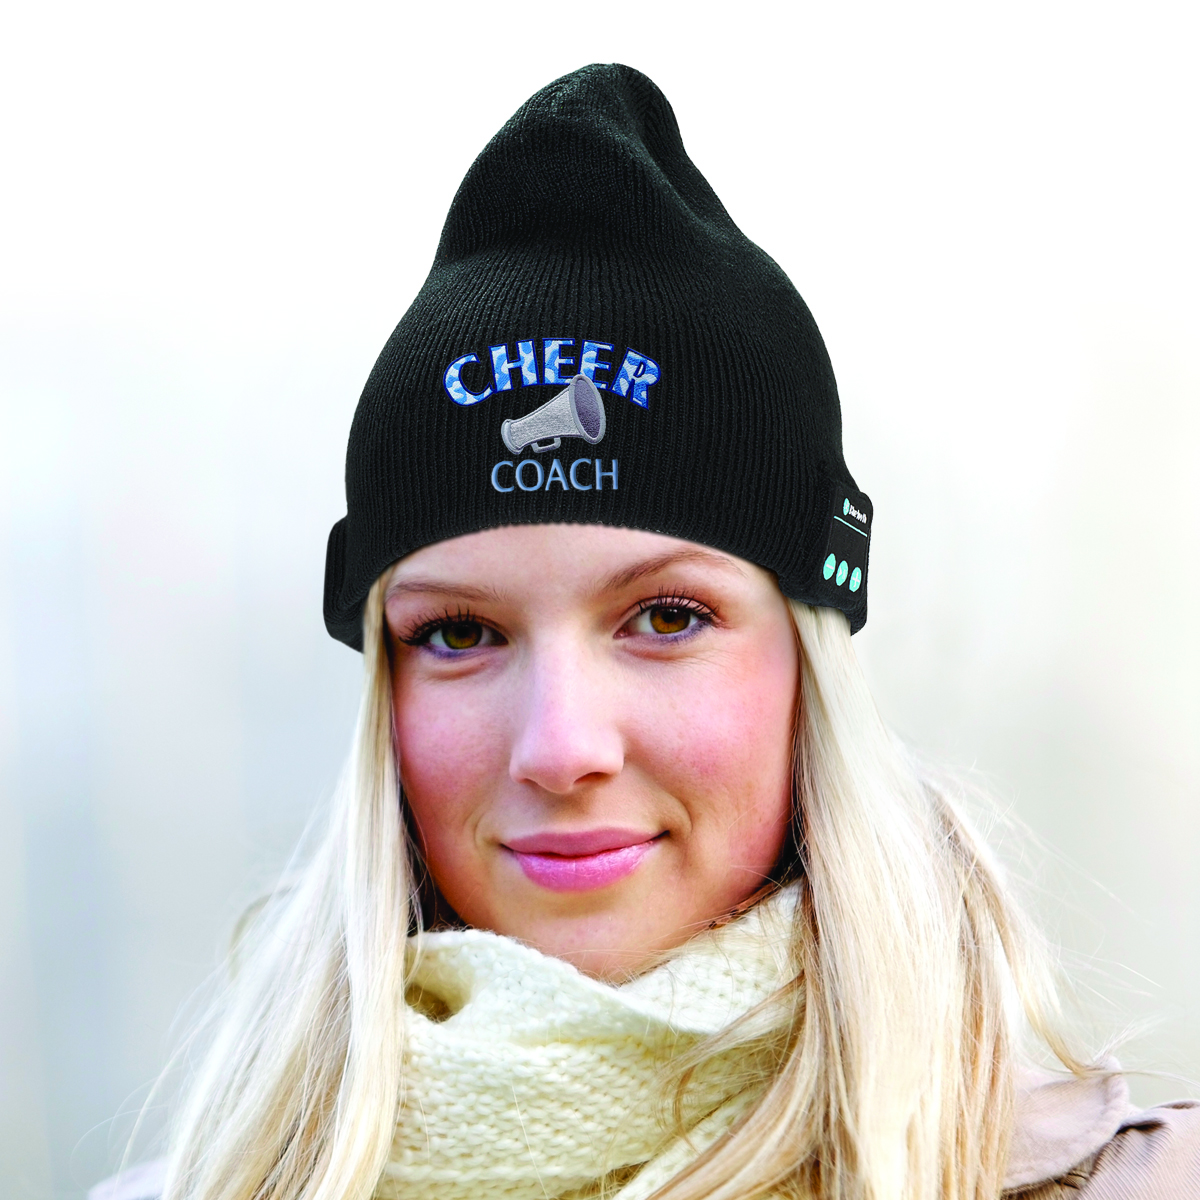 Embroidered and branded bluetooth beanie for winter, races, safety, handsfree promotions